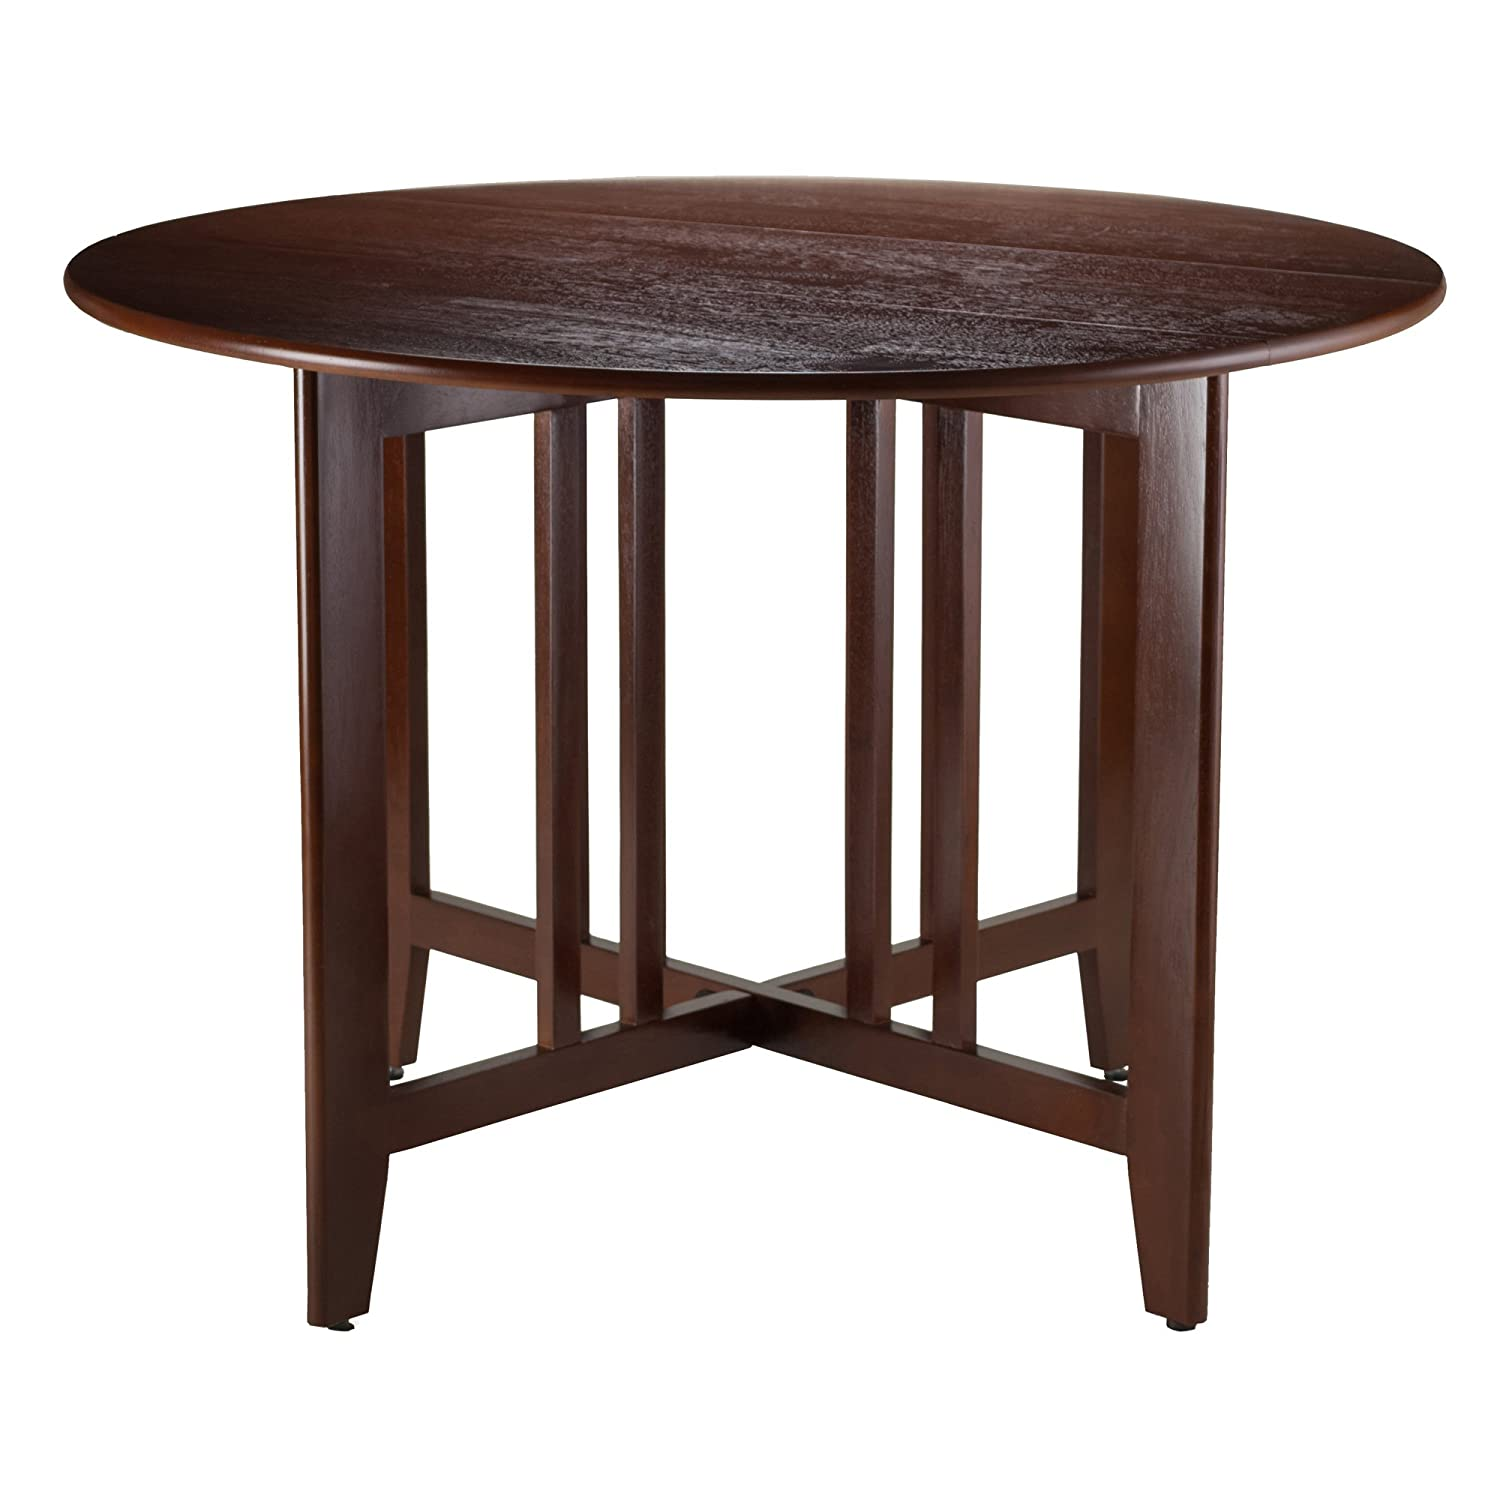 Wood Round Table.Winsome Wood Alamo 94142 Double Drop Leaf Round Table Mission Walnut 42 Inch